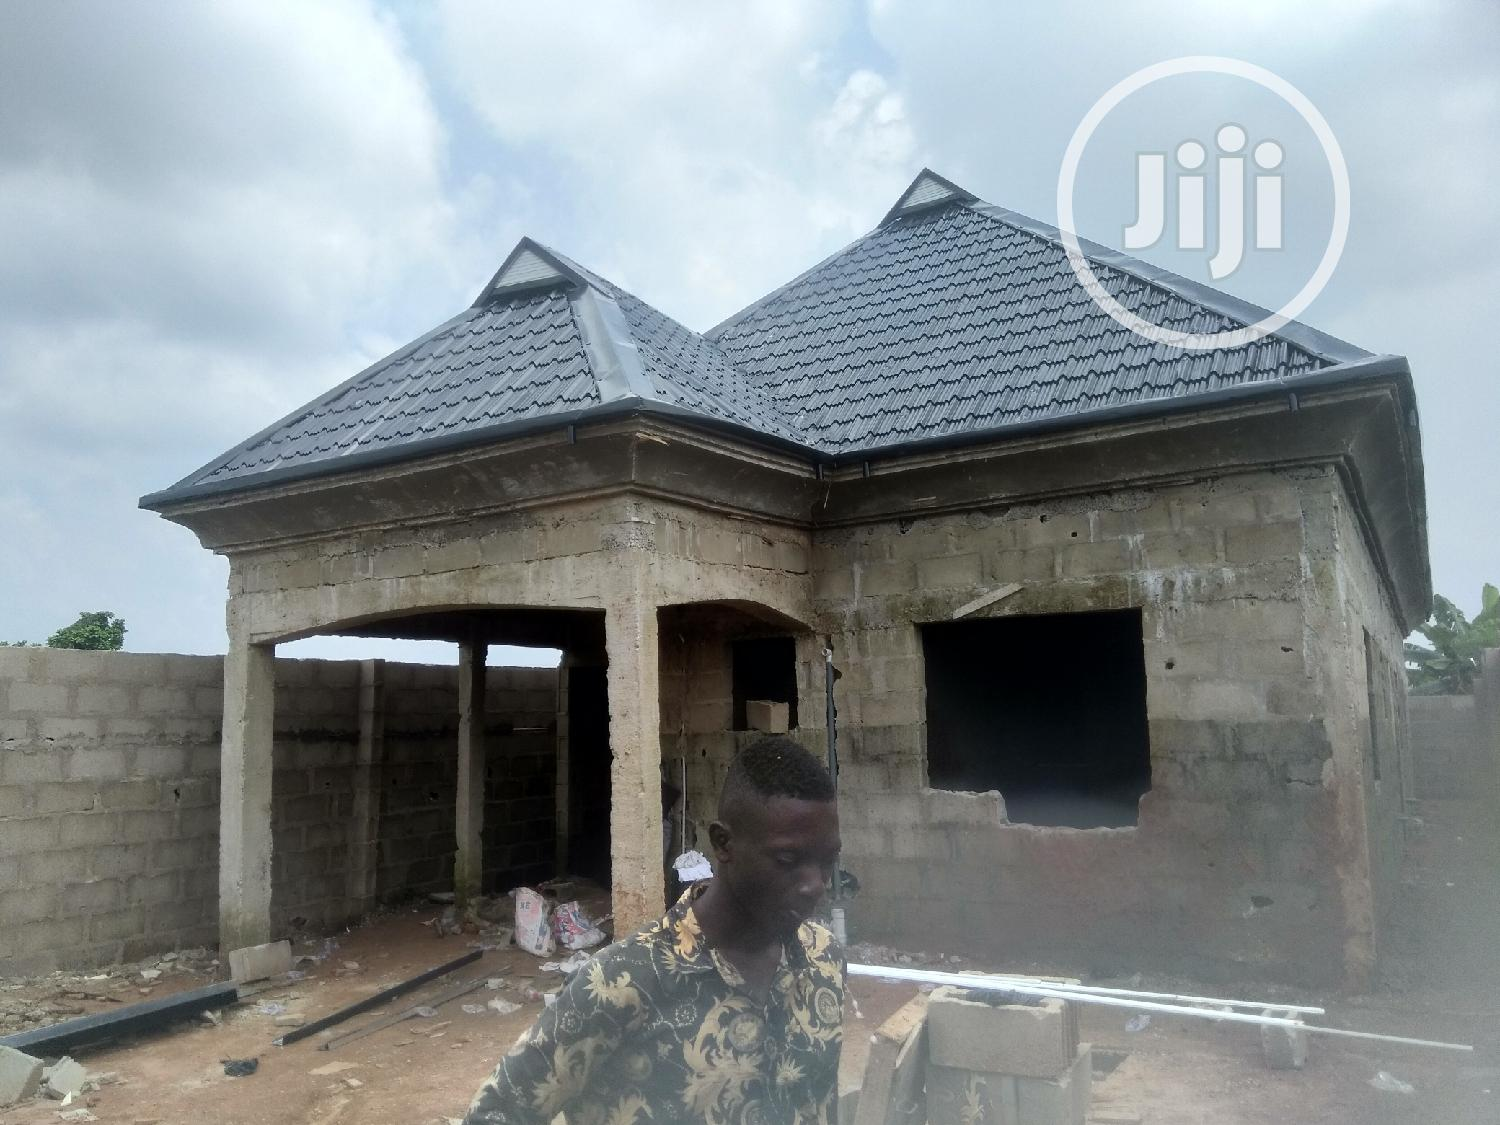 Stelptice Aluminum Roofing Sheet And Install At Wass Aluminu | Building & Trades Services for sale in Agege, Lagos State, Nigeria